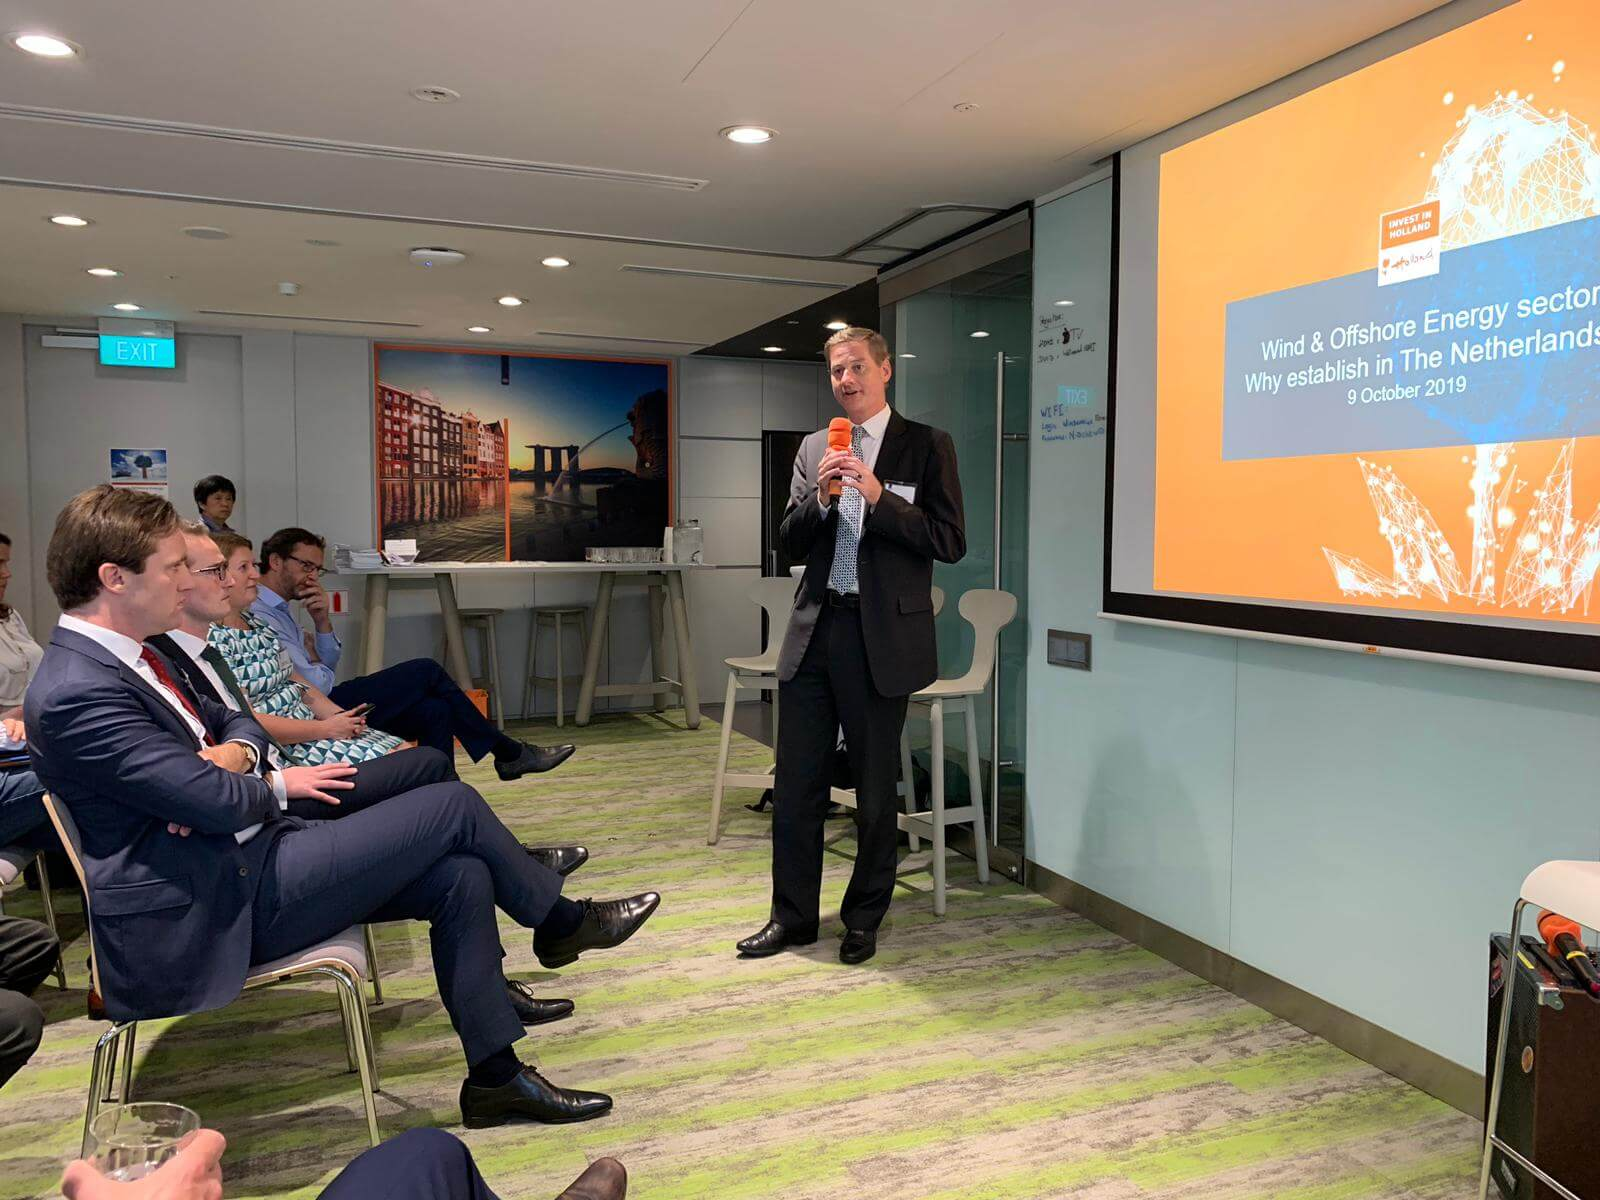 #RotterdamSingapore #CleanTech mission 2019, day 3: Investment Seminar about Offshore Wind.